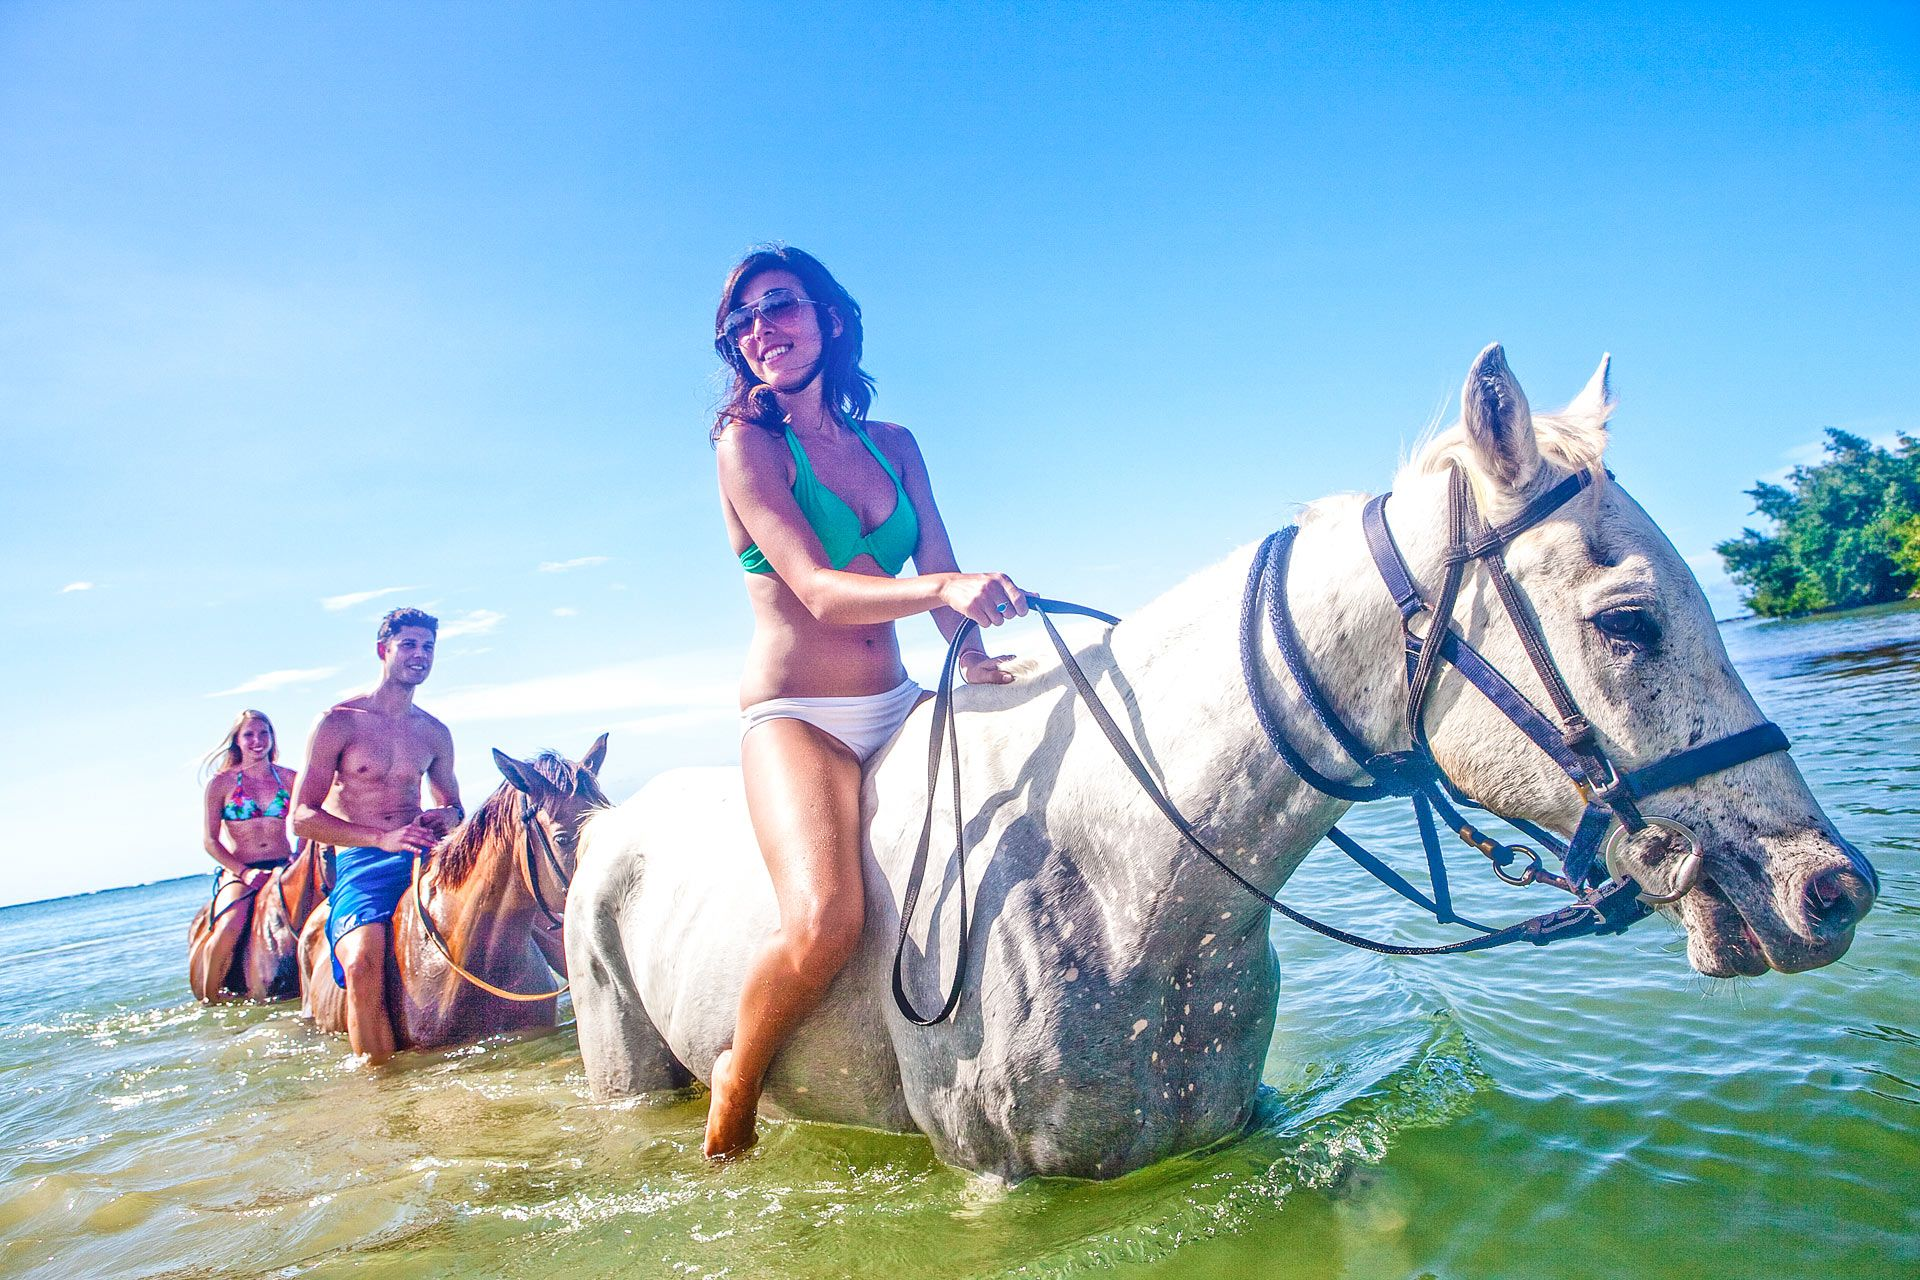 group horseback riding in water